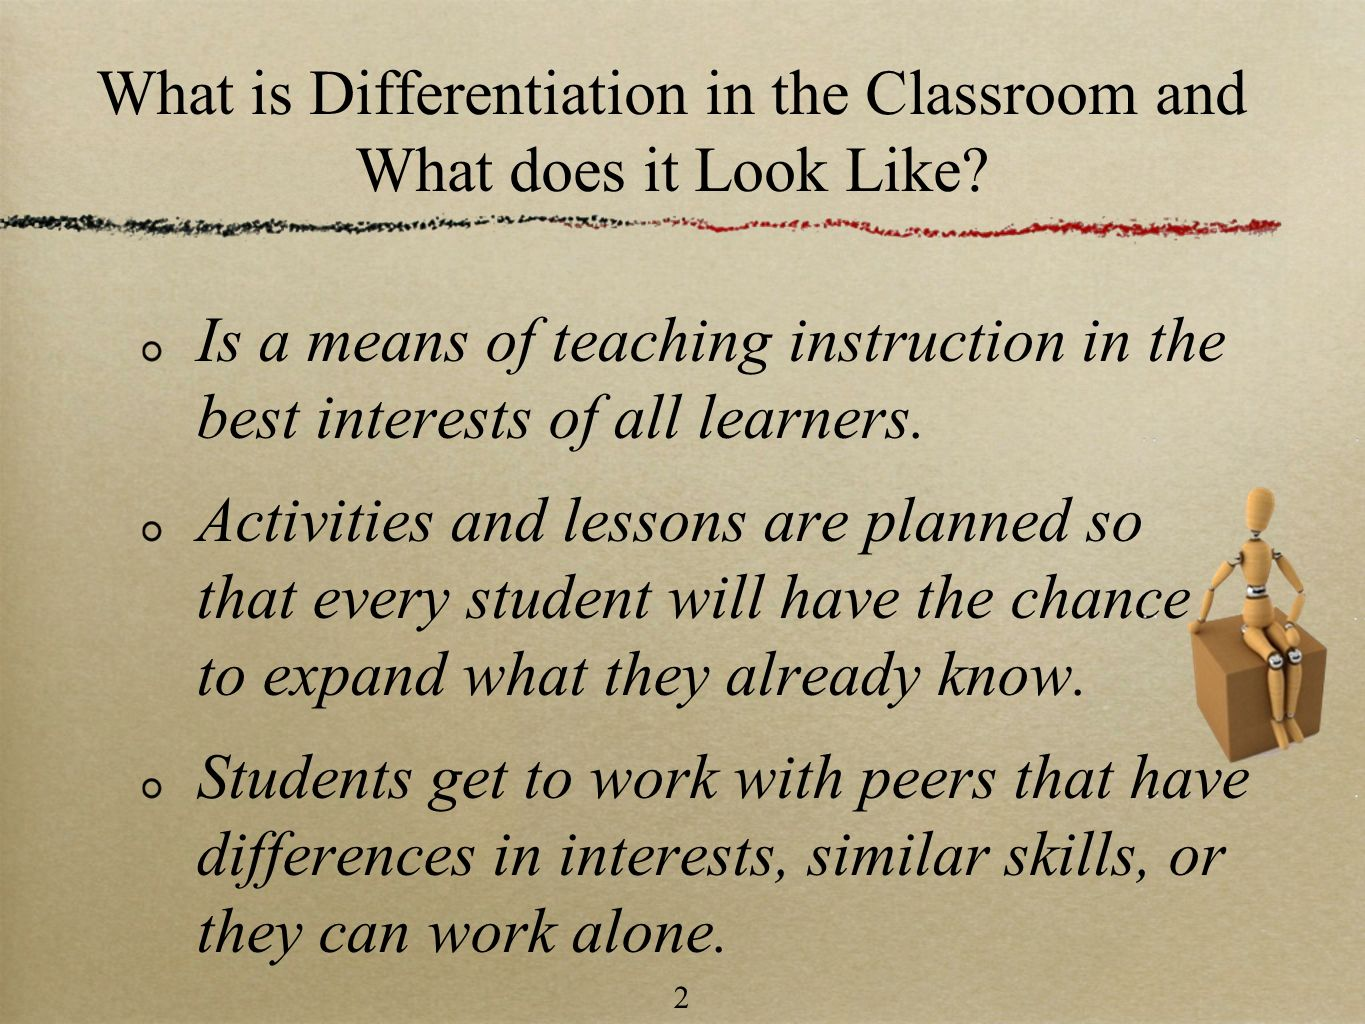 What is Differentiation in the Classroom and What does it Look Like